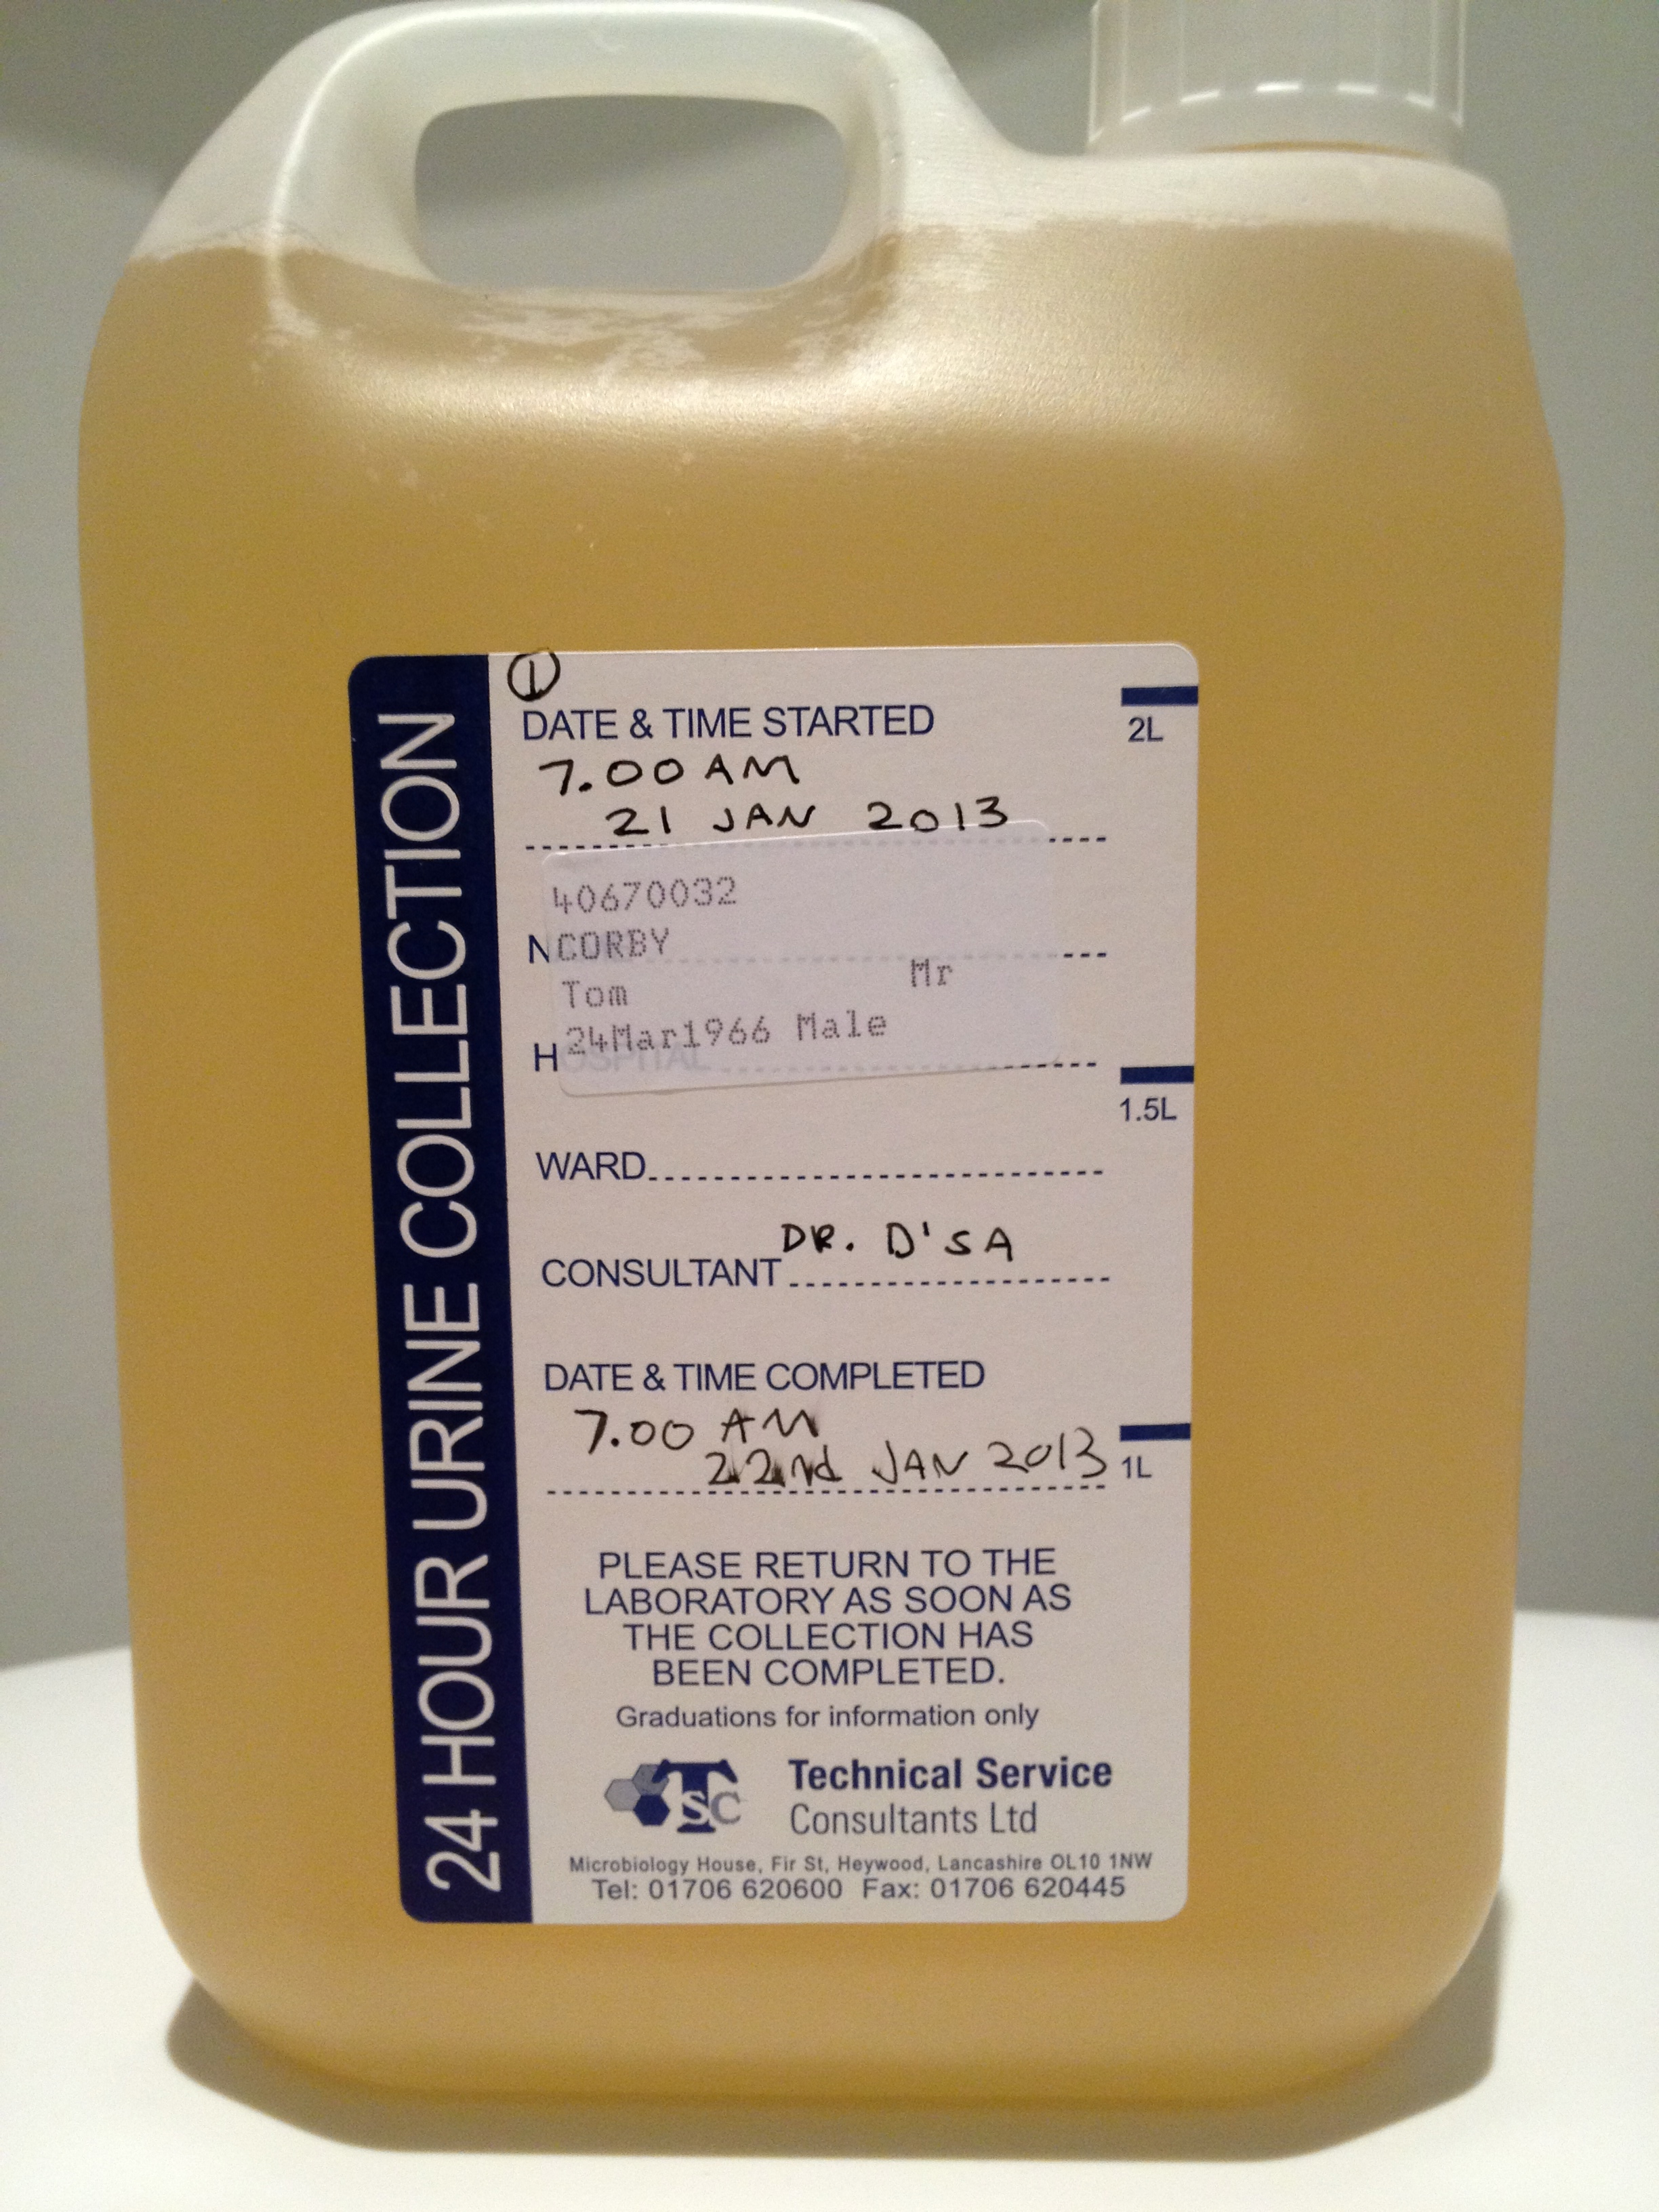 Urine Test That Distinguishes Between Alcohol In Nyquil And Drinks